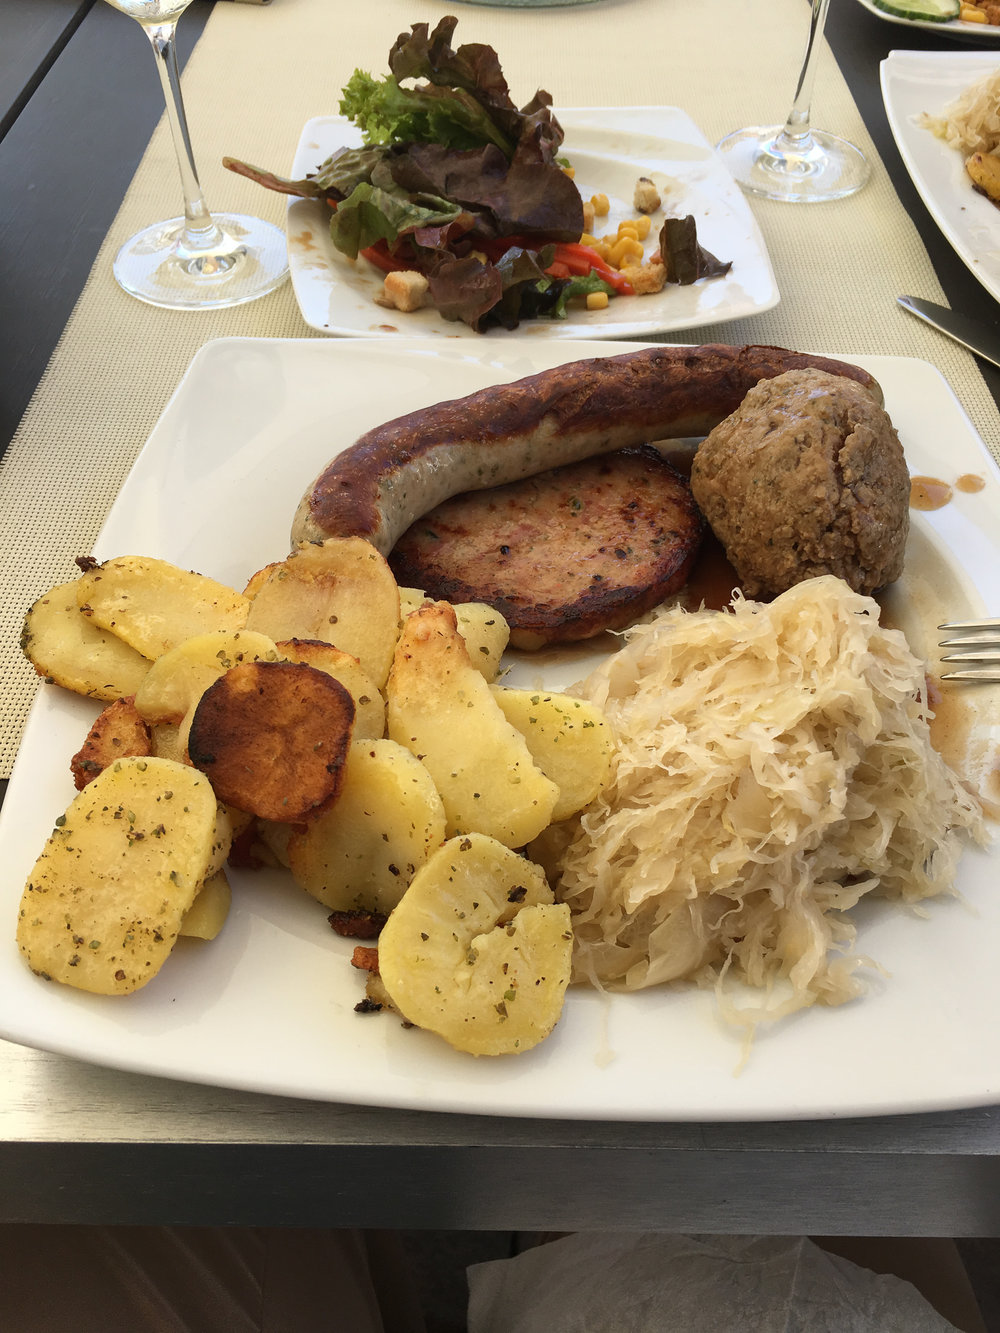 Yes, those are three types of sausages, including a type of liver sausage with sauerkraut & potatoes. Mmmmm!